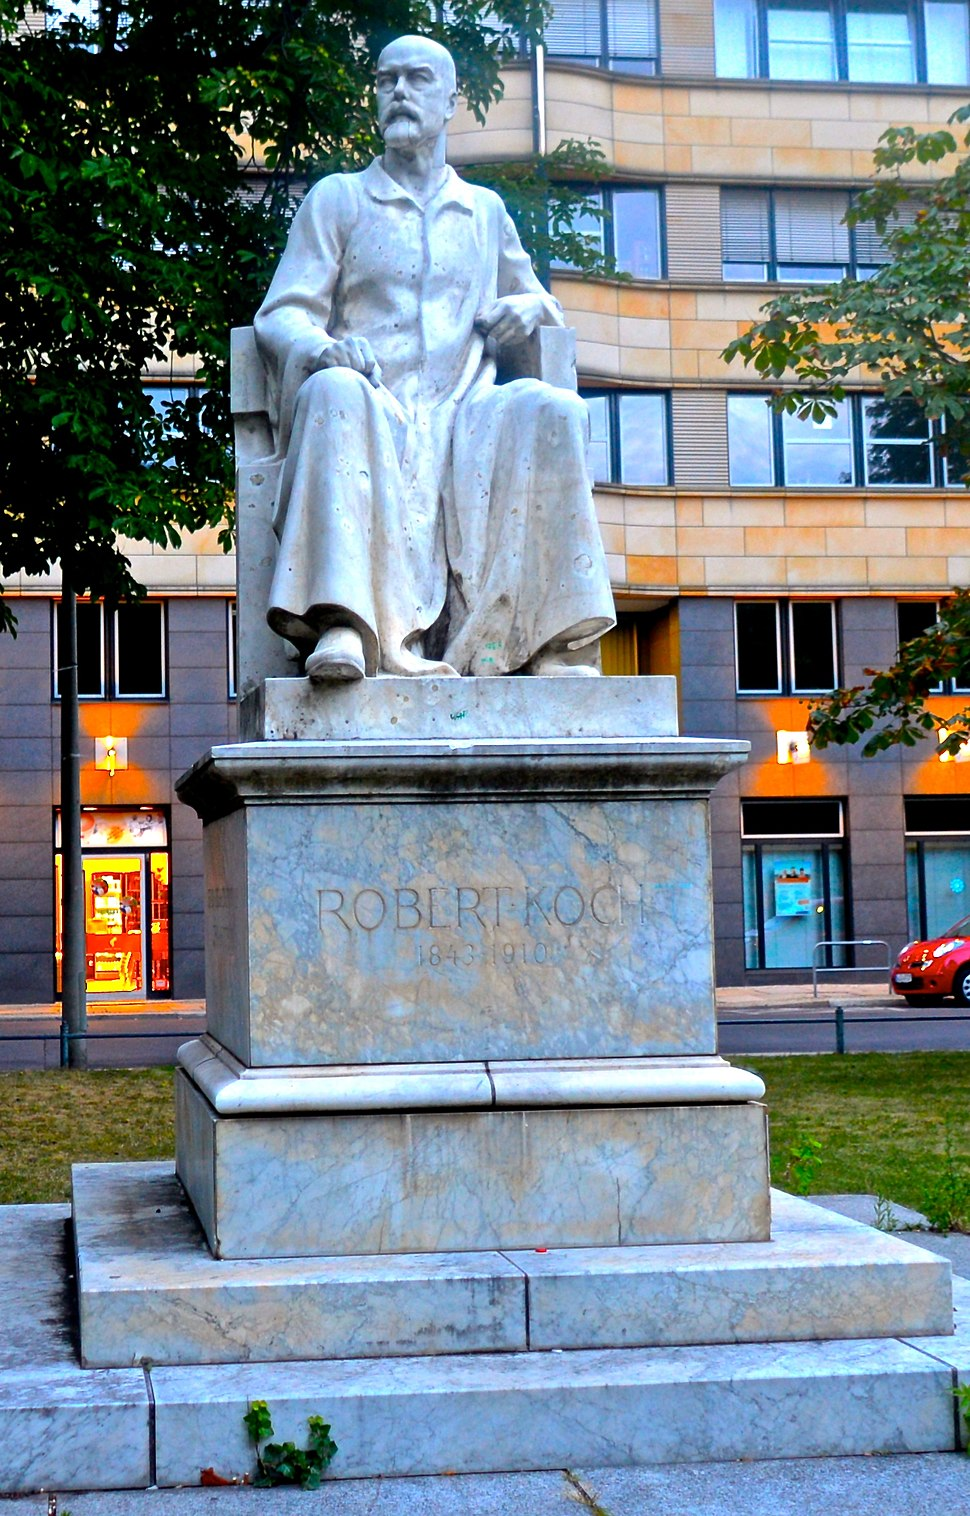 Statue of Robert Koch in Berlin